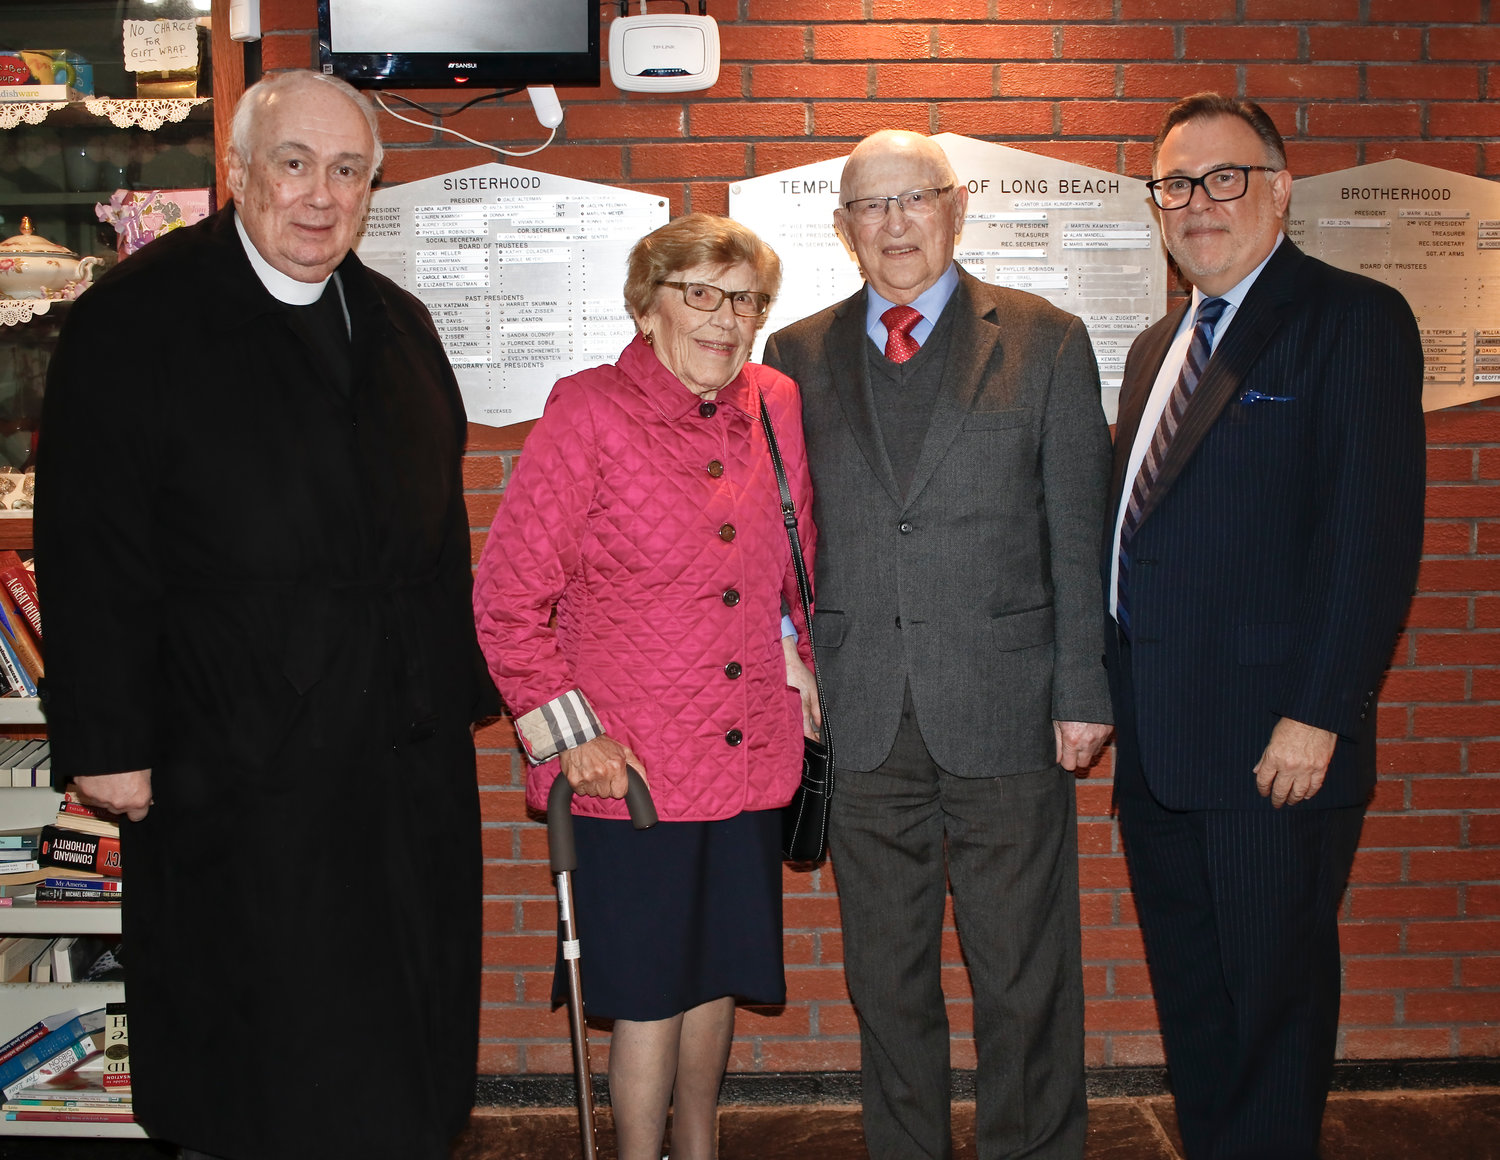 Local Holocaust survivor Simon Berger spoke to a crowd of people at Temple Emanu-El of Long Beach on May 5 for the annual Yom Hashoah program.